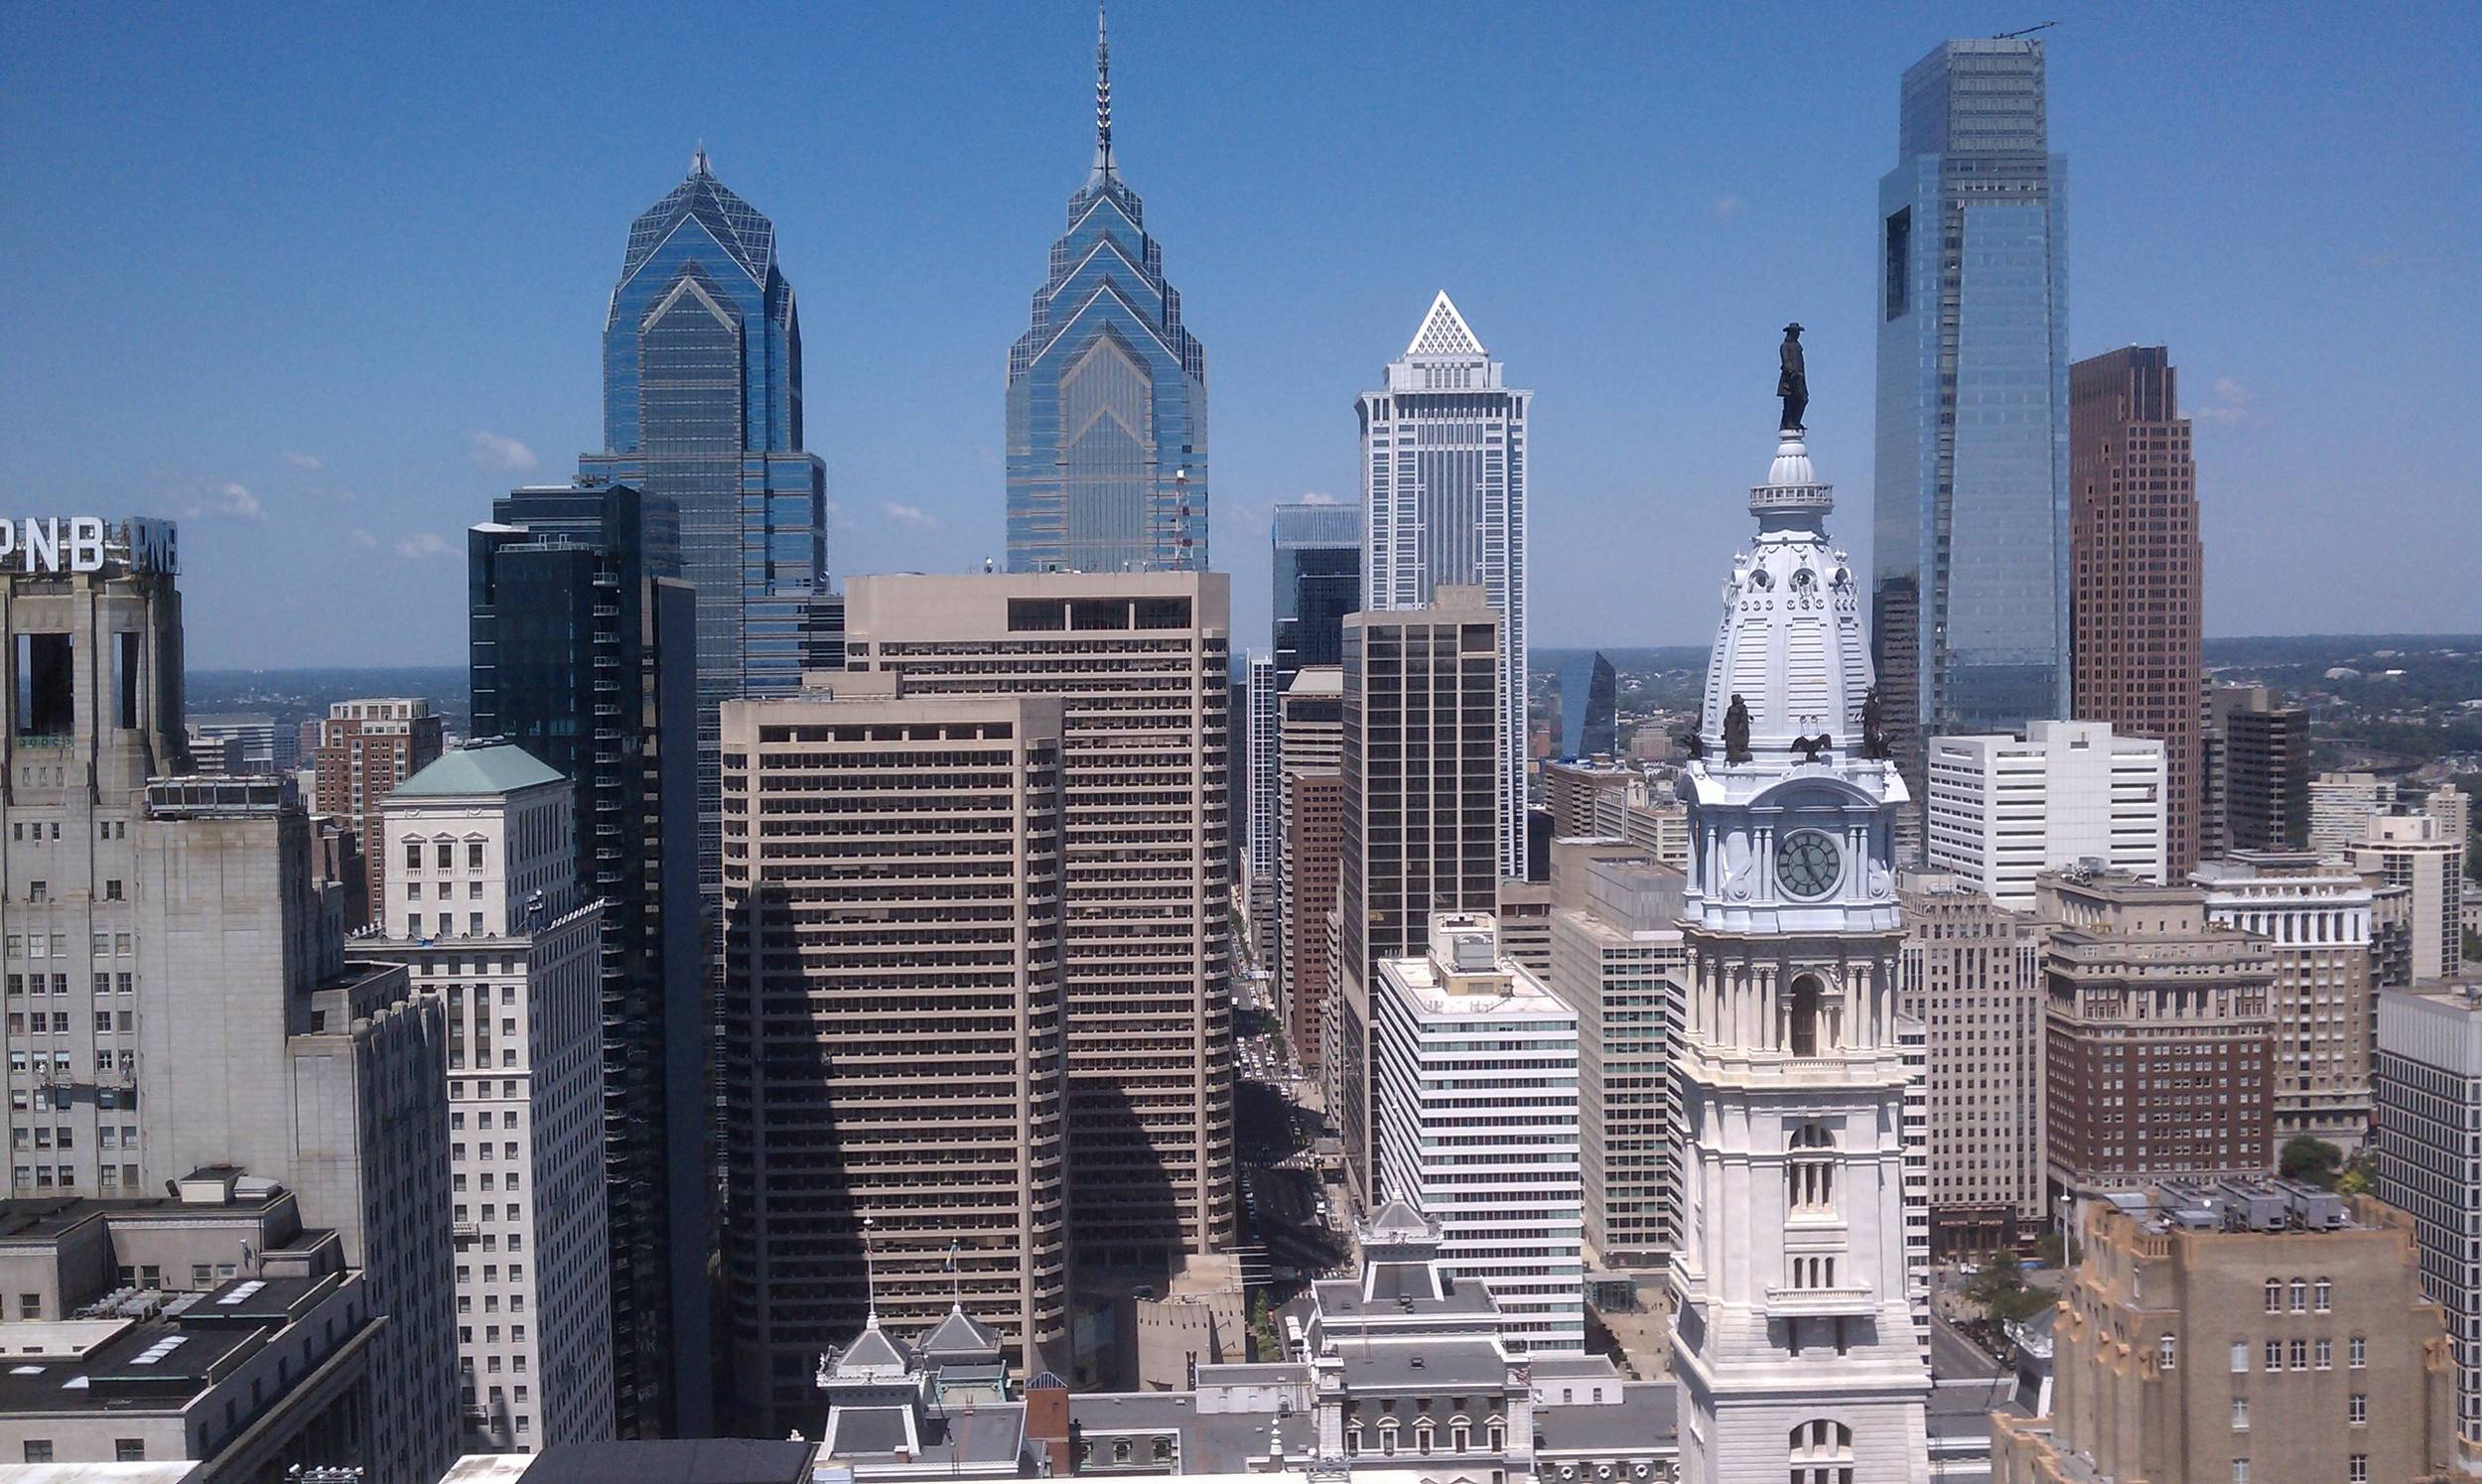 Philadelphia, PA. Location for this year's AIA National Convention #AIACON16